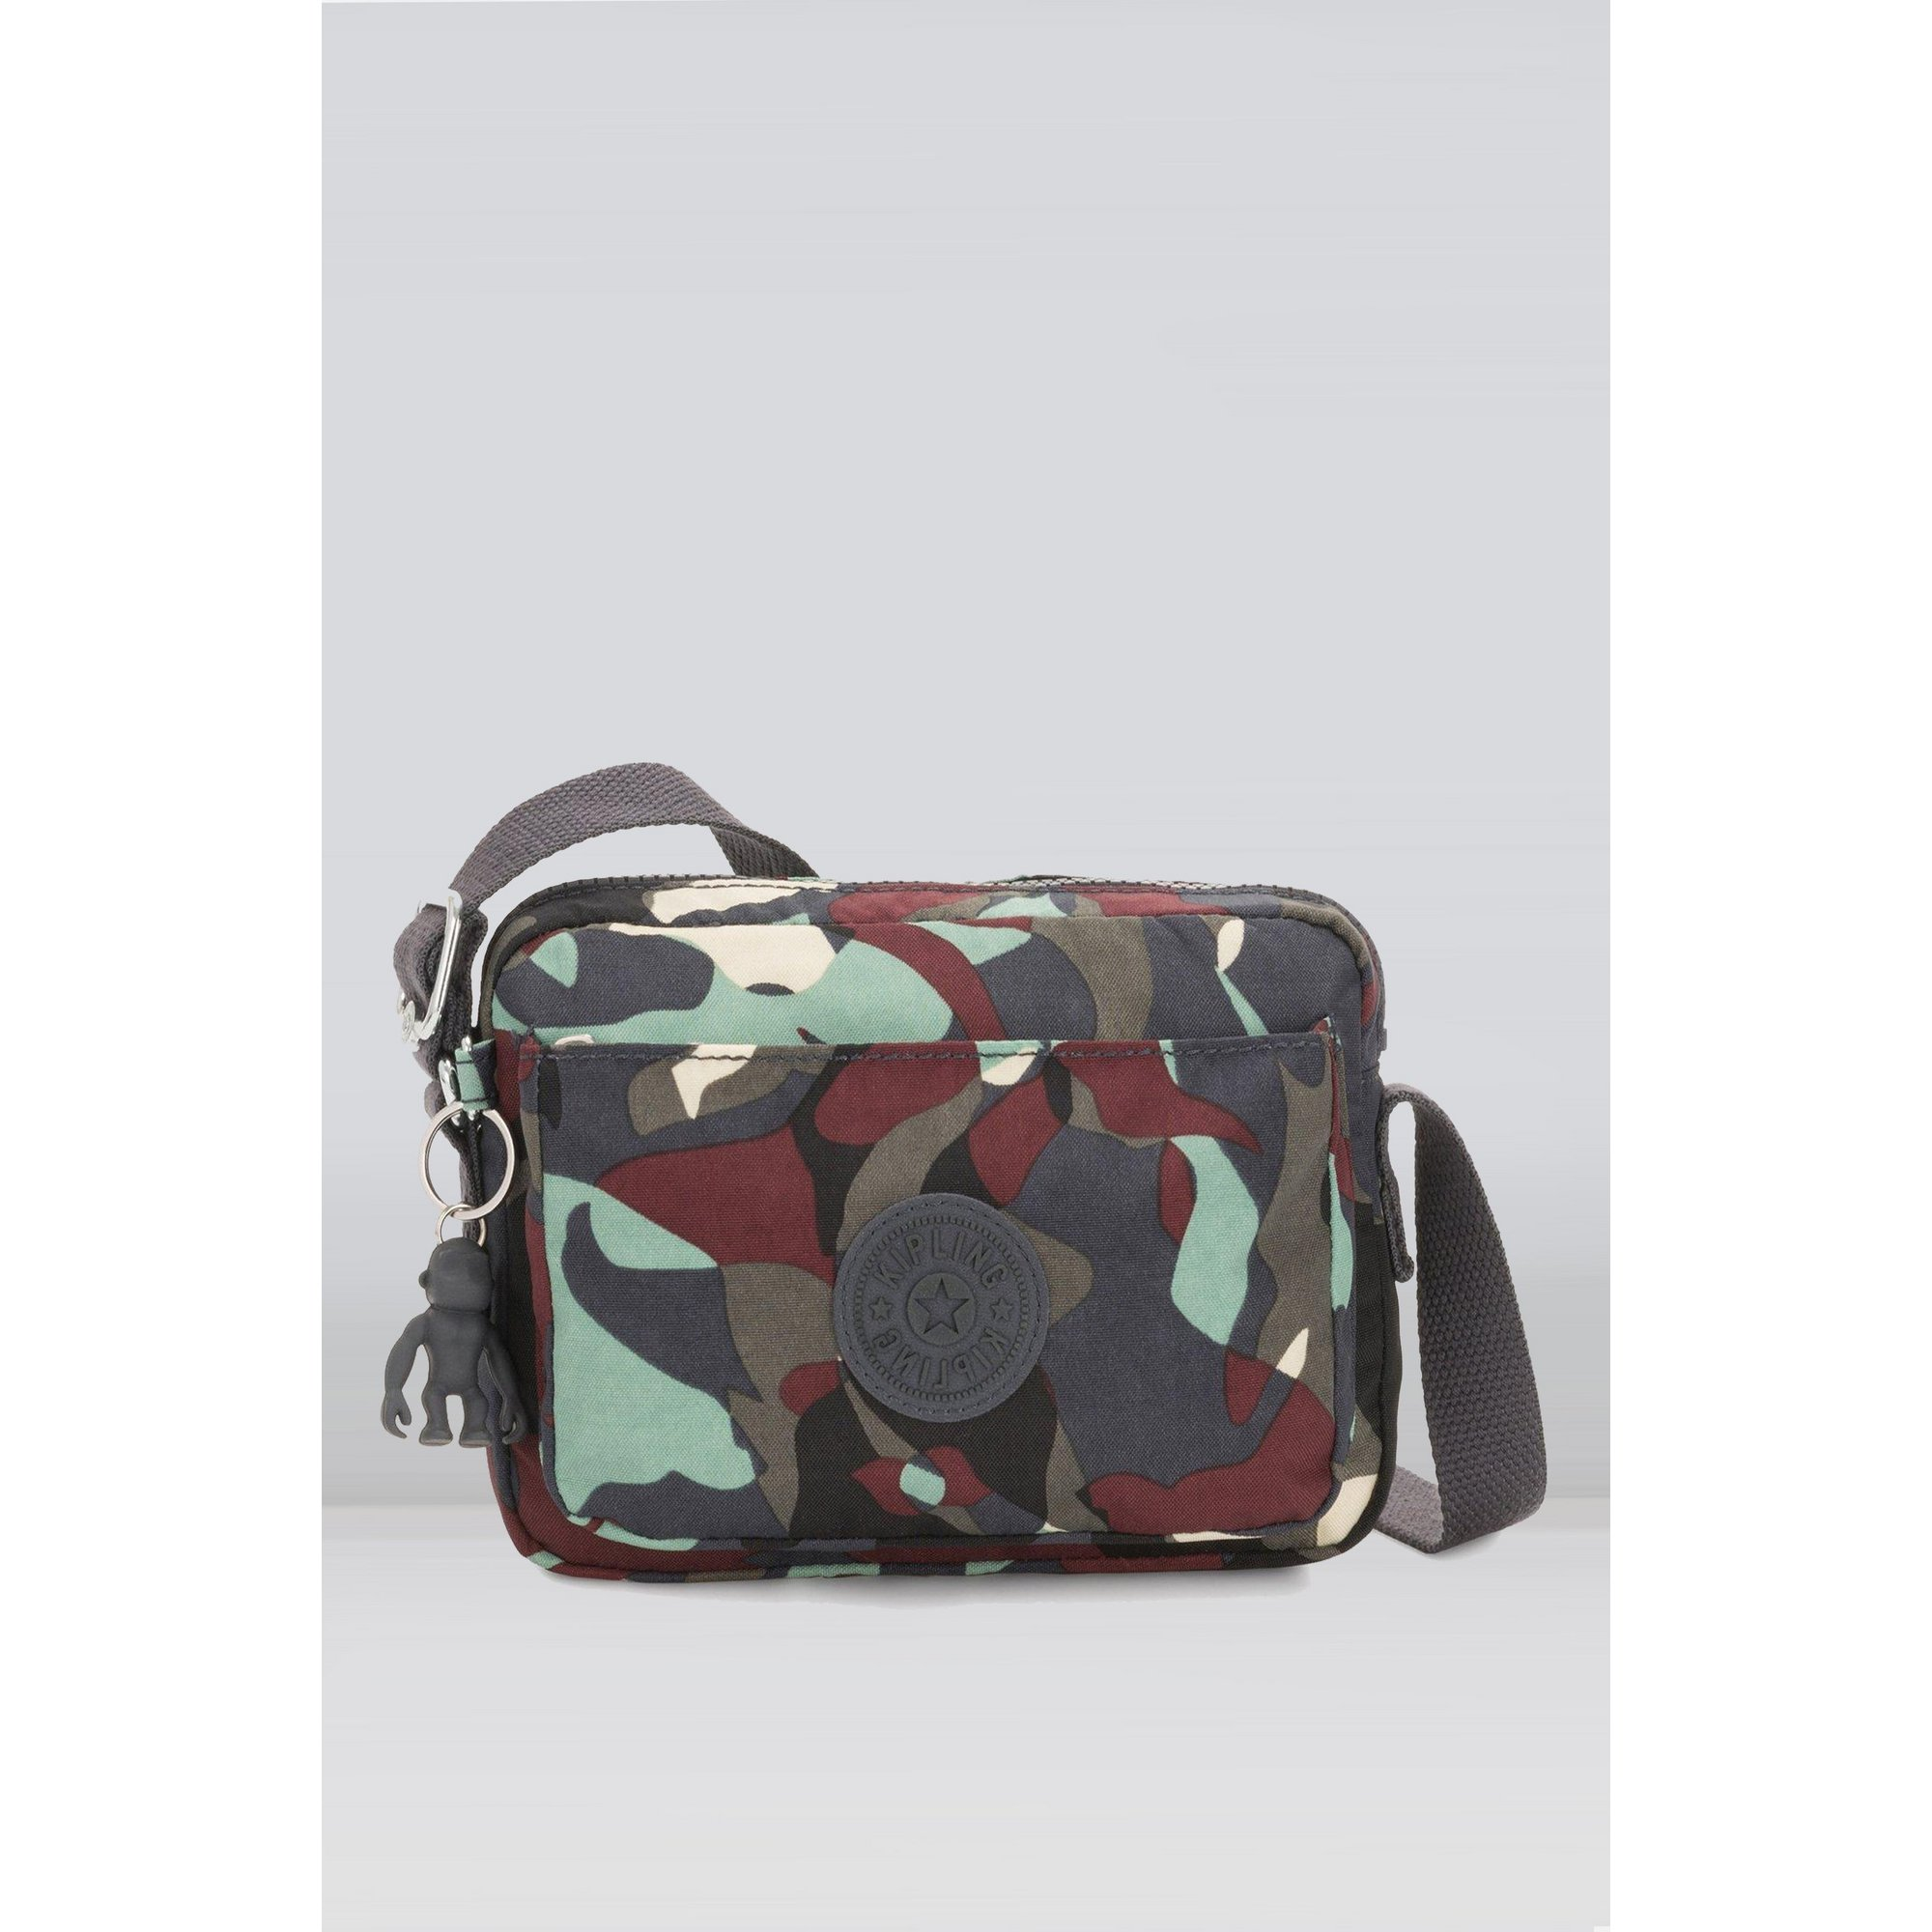 Image of Kipling Abanu Large Camo Cross Body Bag